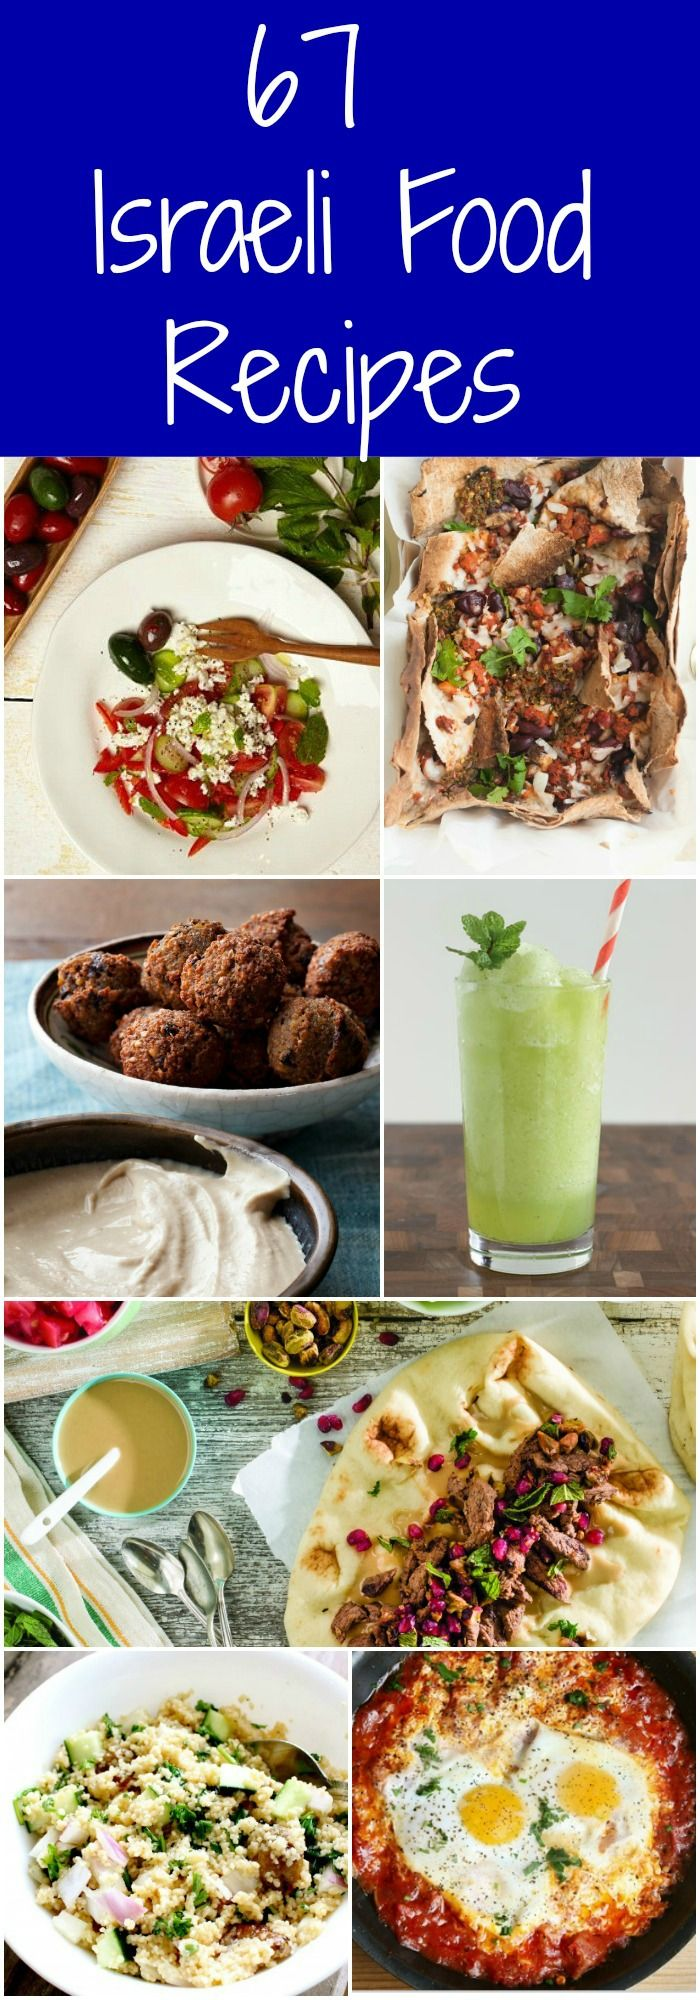 67 Israeli Food Recipes You Need To Try